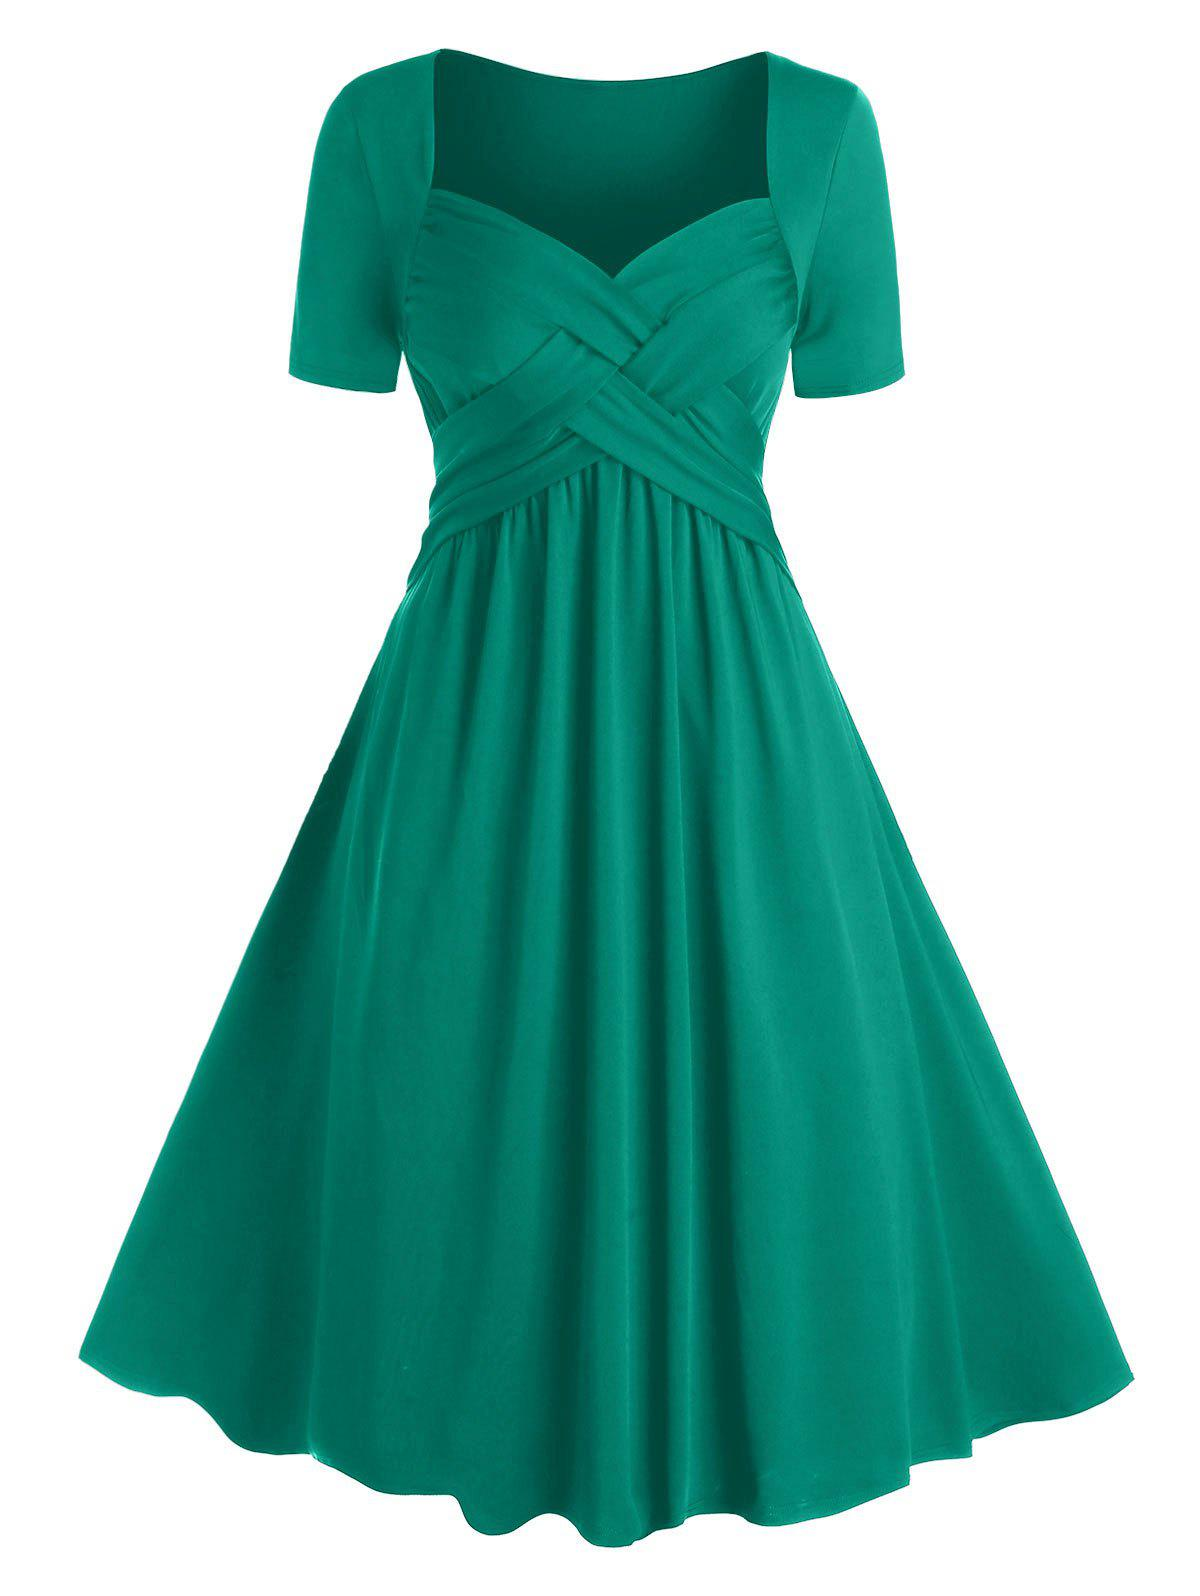 Plus Size Crossover Fit and Flare Dress - MEDIUM TURQUOISE 2X